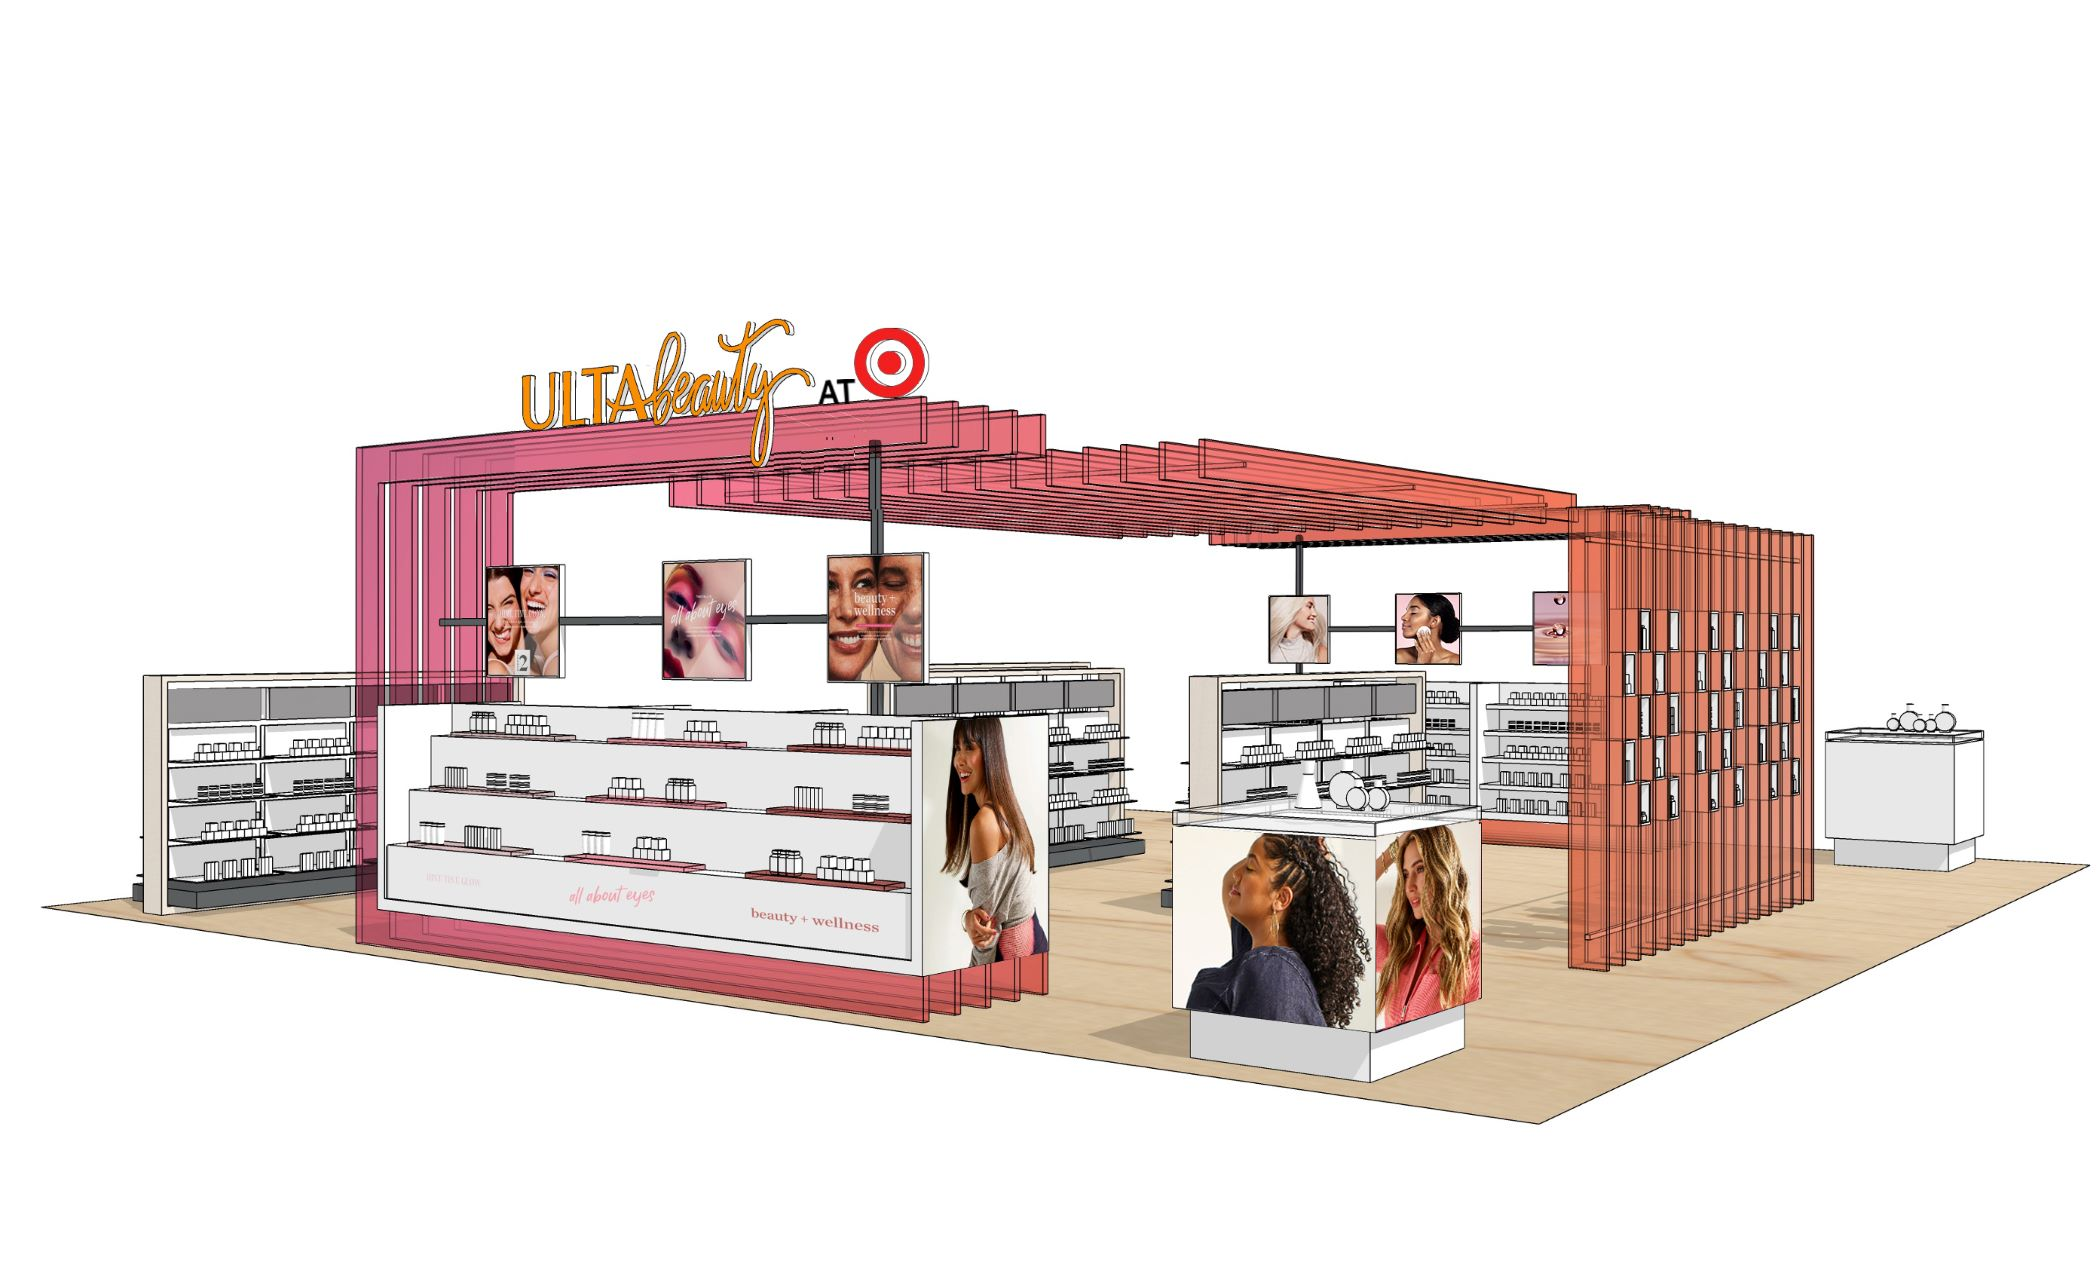 Ulta Beauty plans to open shops in 100 Target stores at the beginning of 2021. (Ulta Beauty)